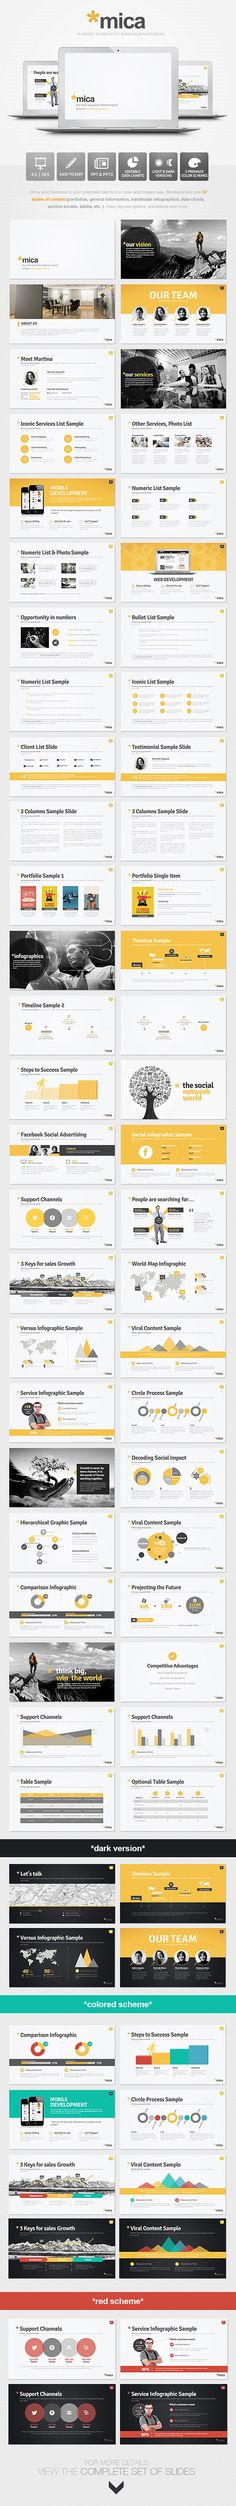 Aqua Powerpoint Template | Presentation Templates, Powerpoint